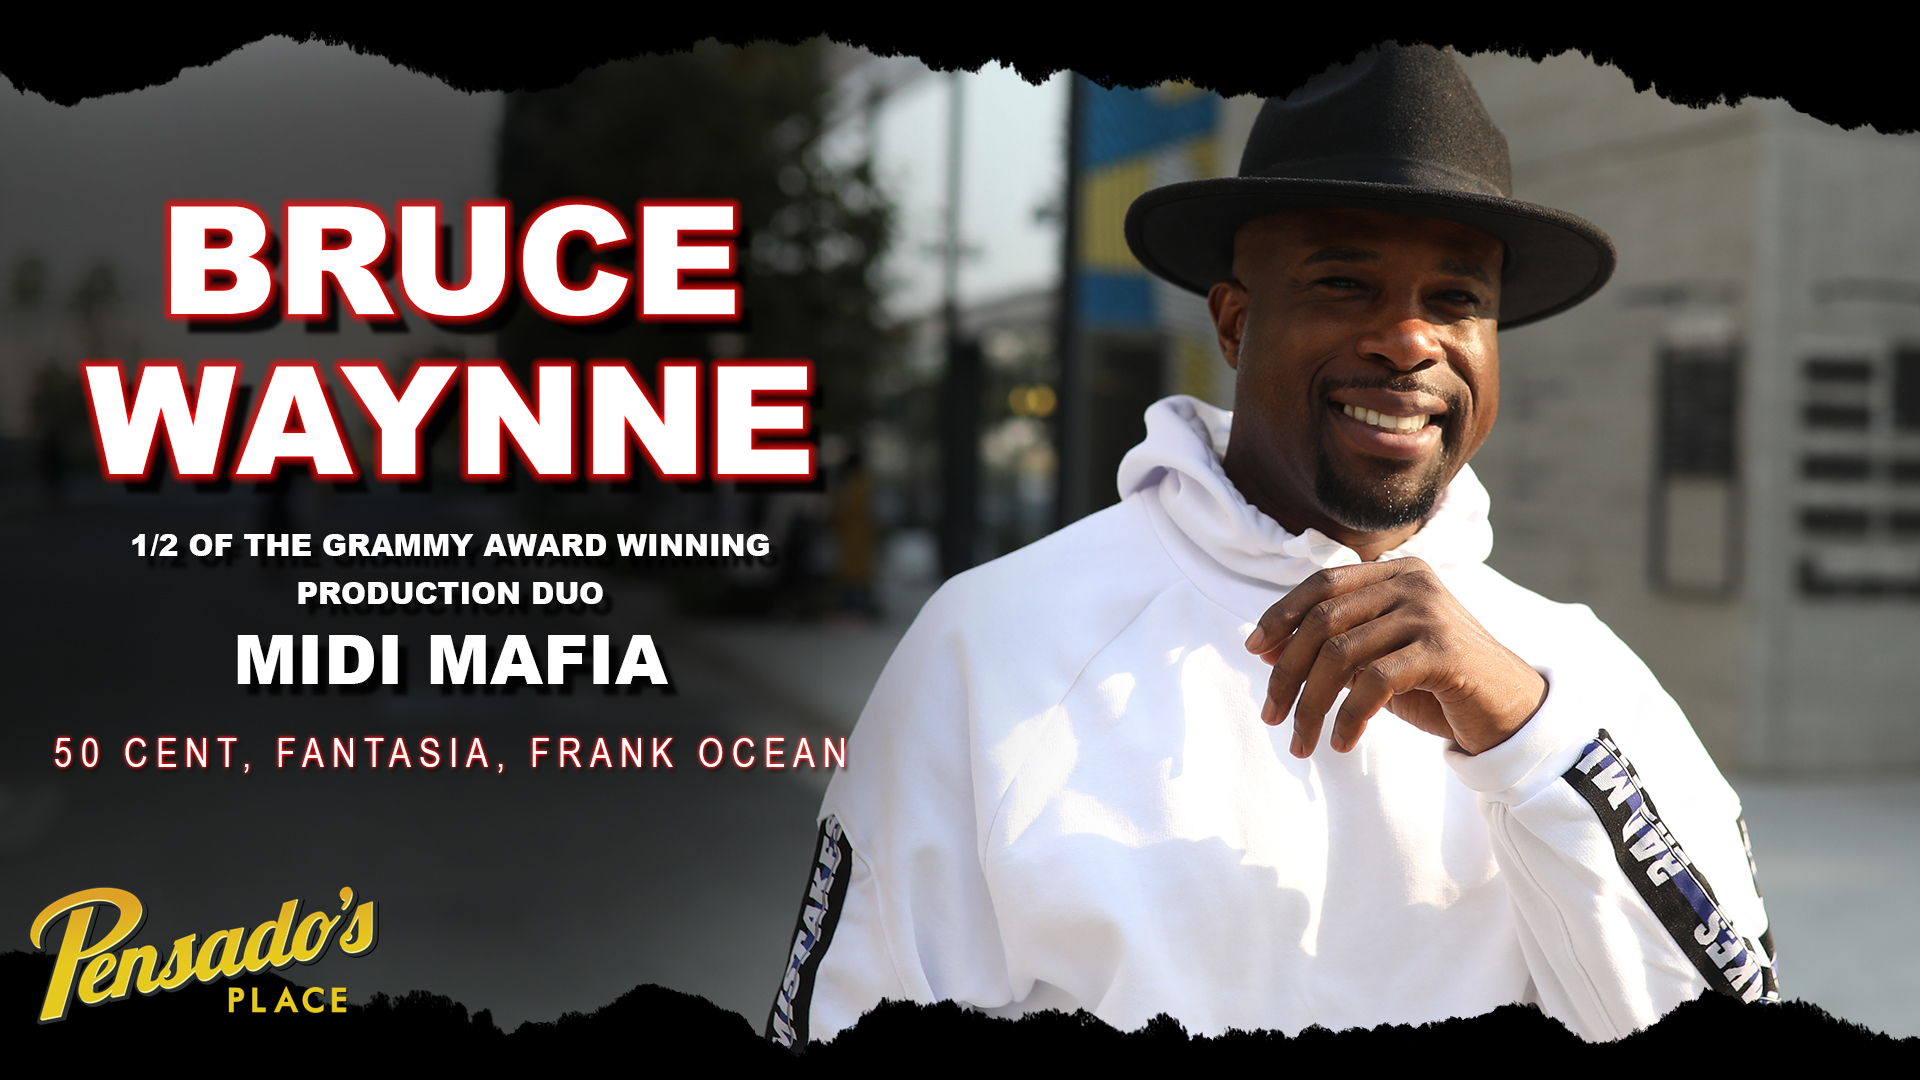 Grammy Winning Producer / VP of Transparence Ent., Bruce Waynne